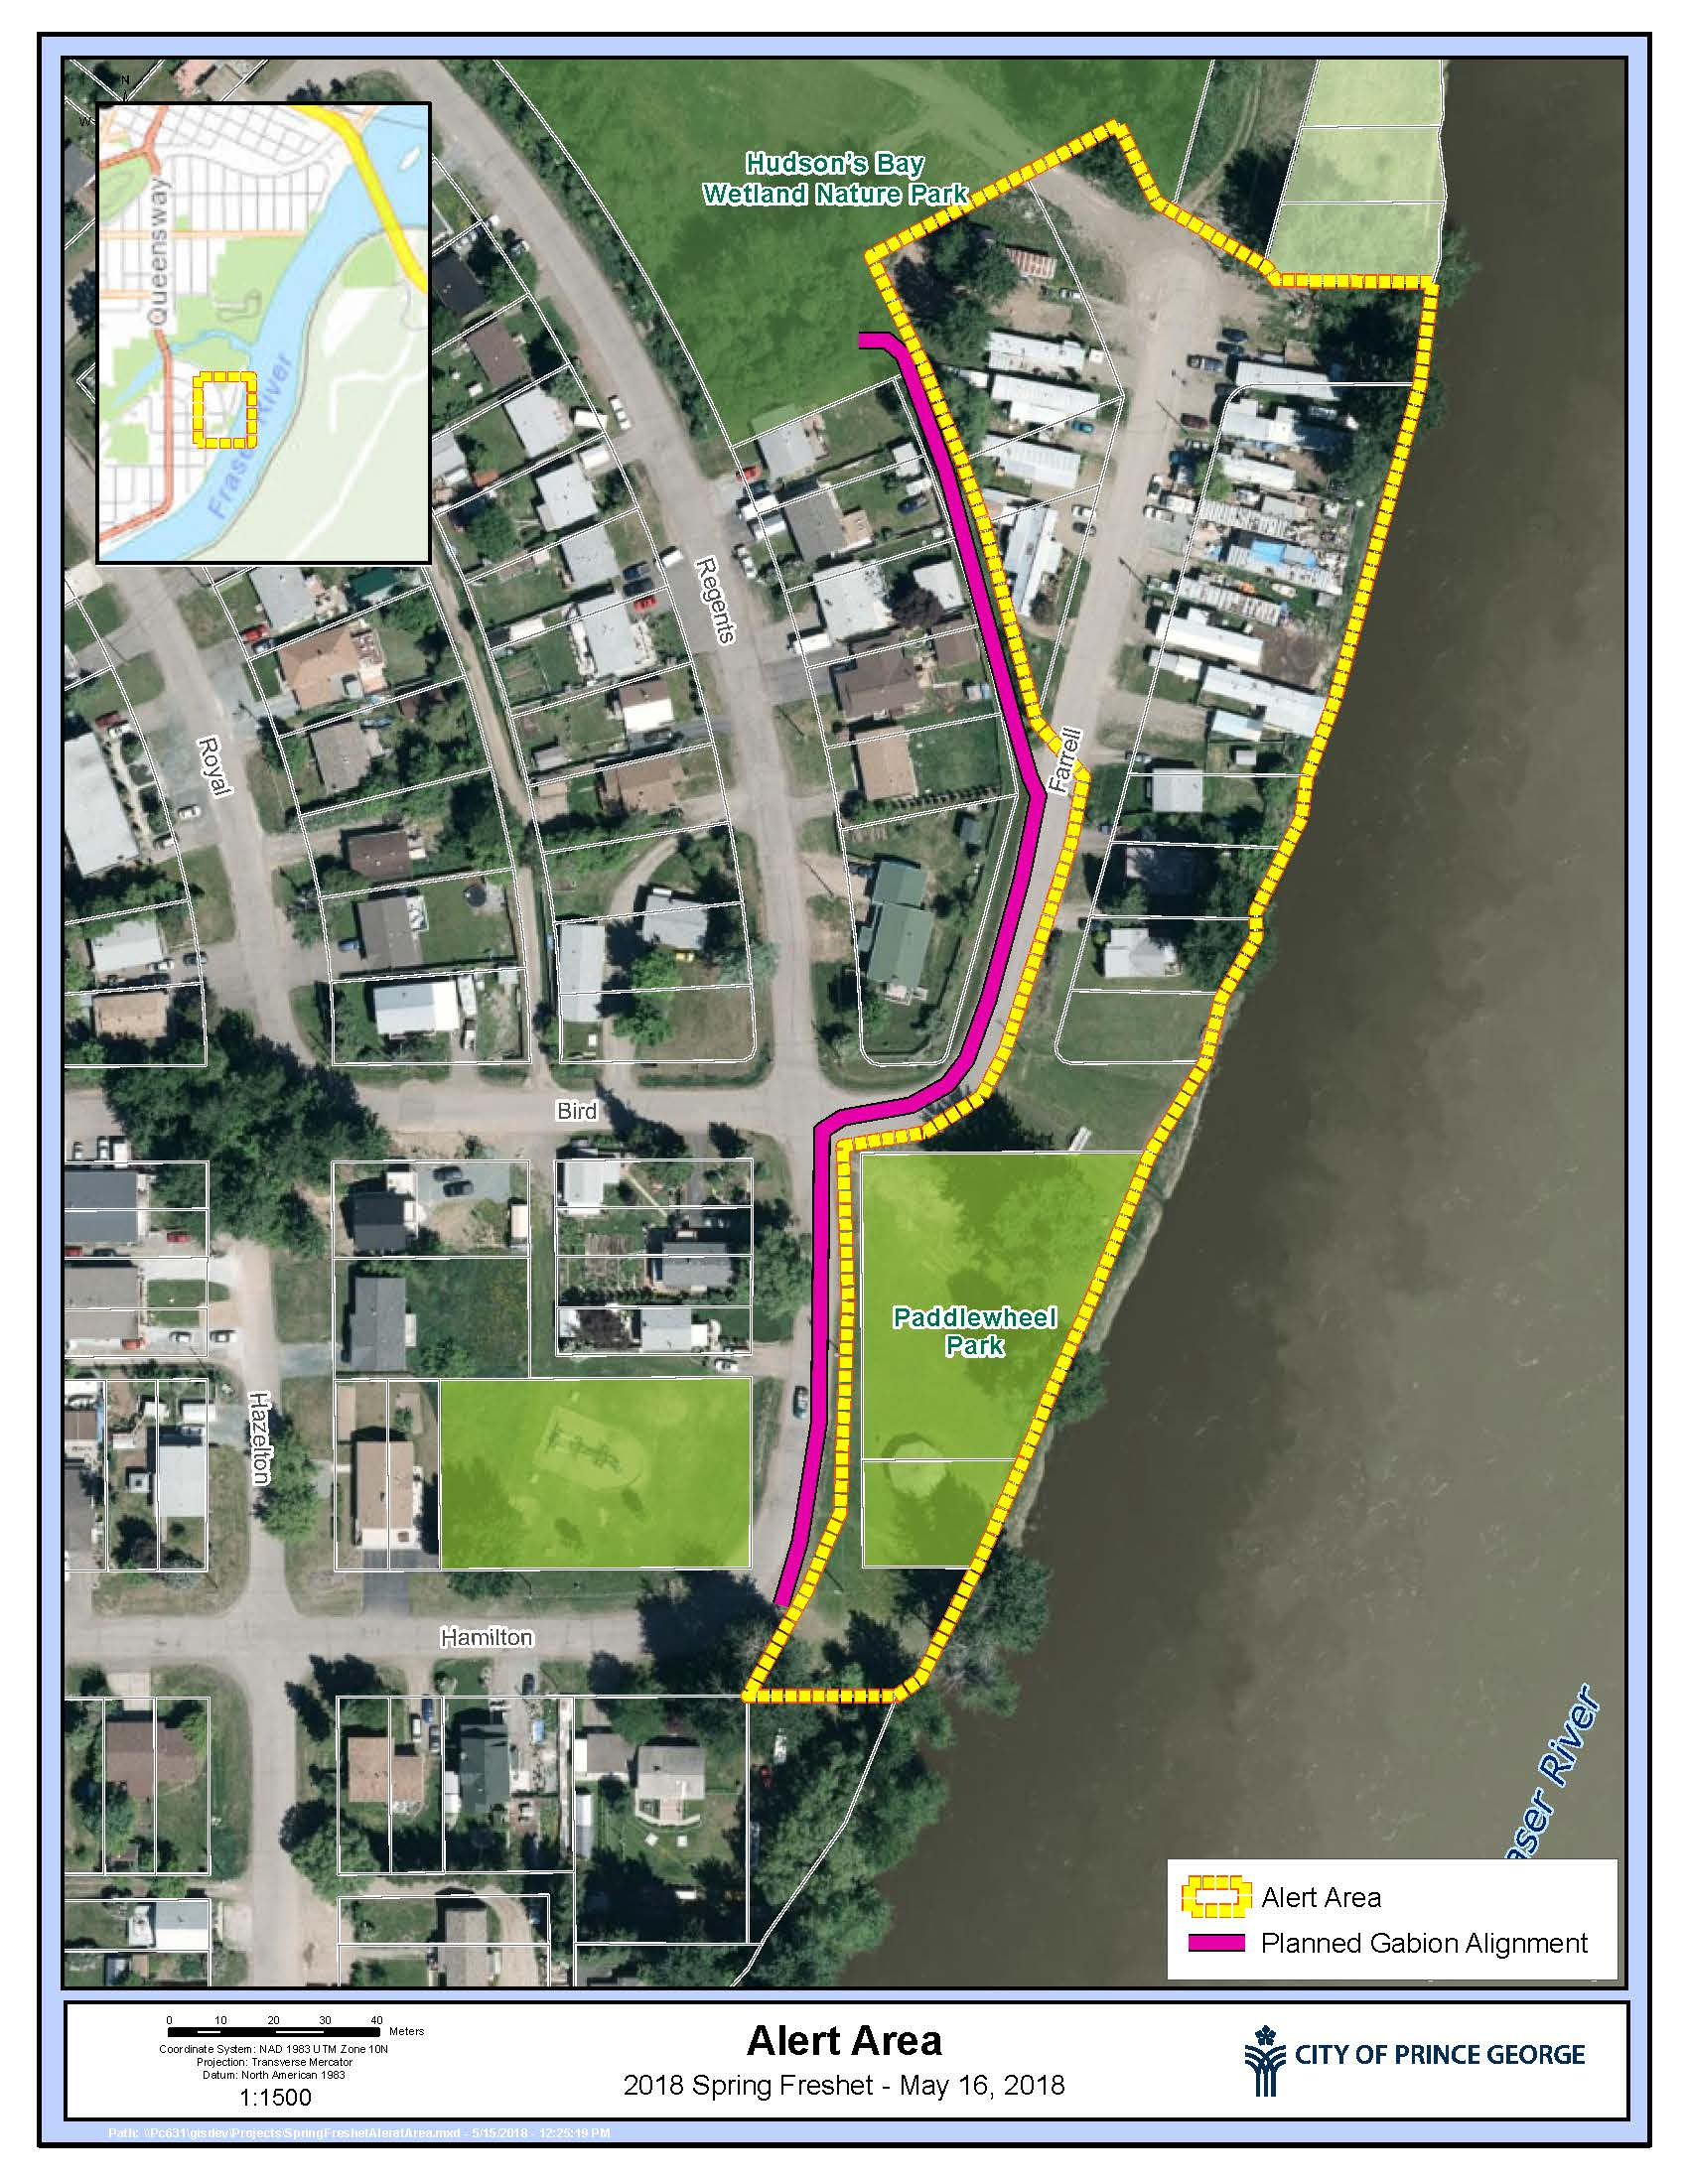 The City of Prince George is alerting residents living on Farrell Street near Paddlewheel Park that there is a significant risk of flooding in their area. Residents are advised to be ready to leave their properties on short notice should an evacuation order be issued. No evacuation orders have yet been given. Please refer to the map, which outlines the affected area.